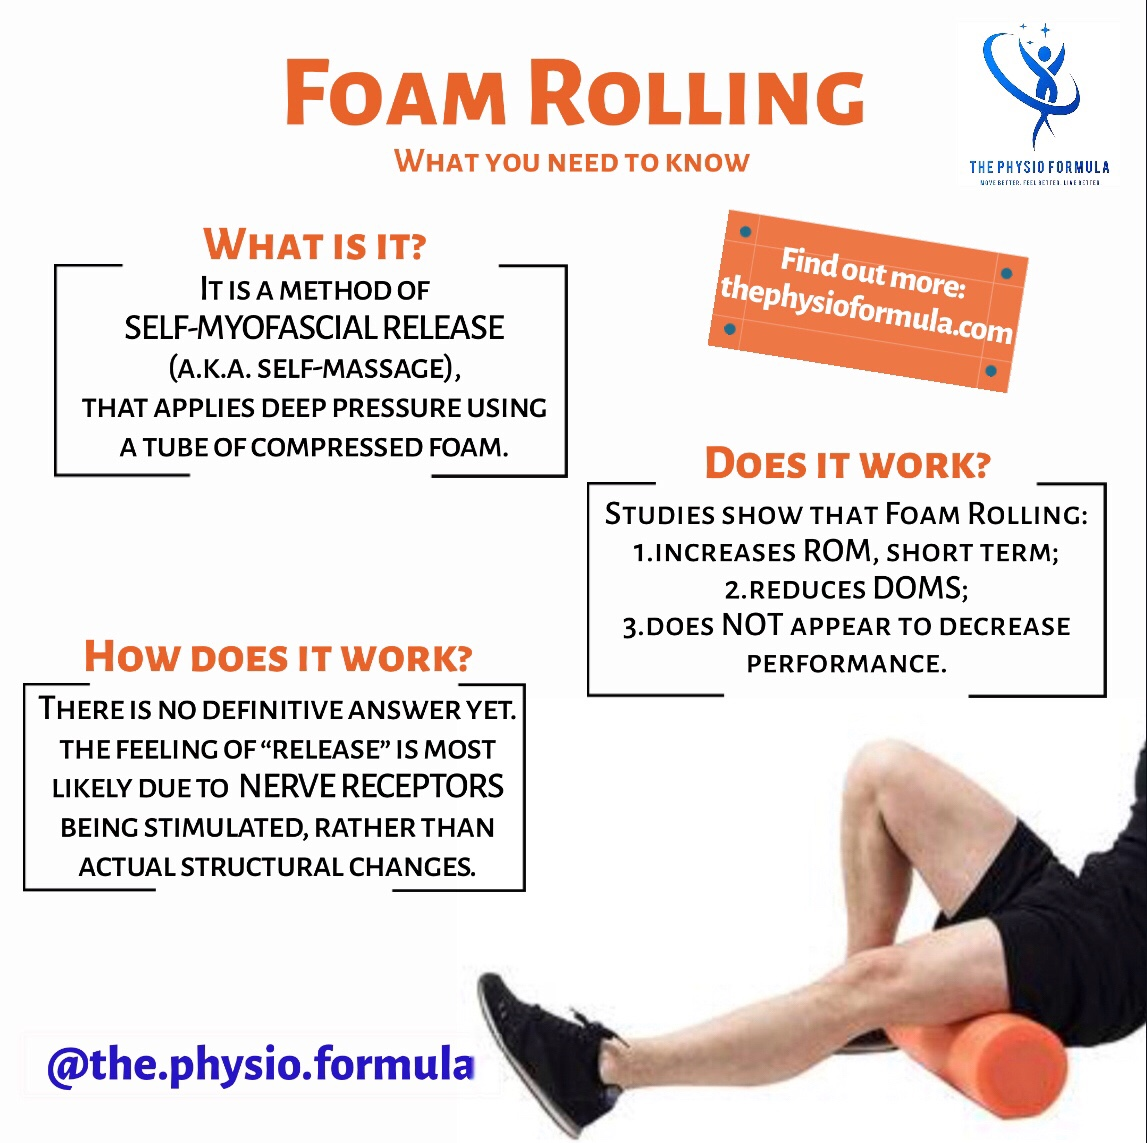 Foam Rolling: What's the Big Deal? – THE PHYSIO FORMULA